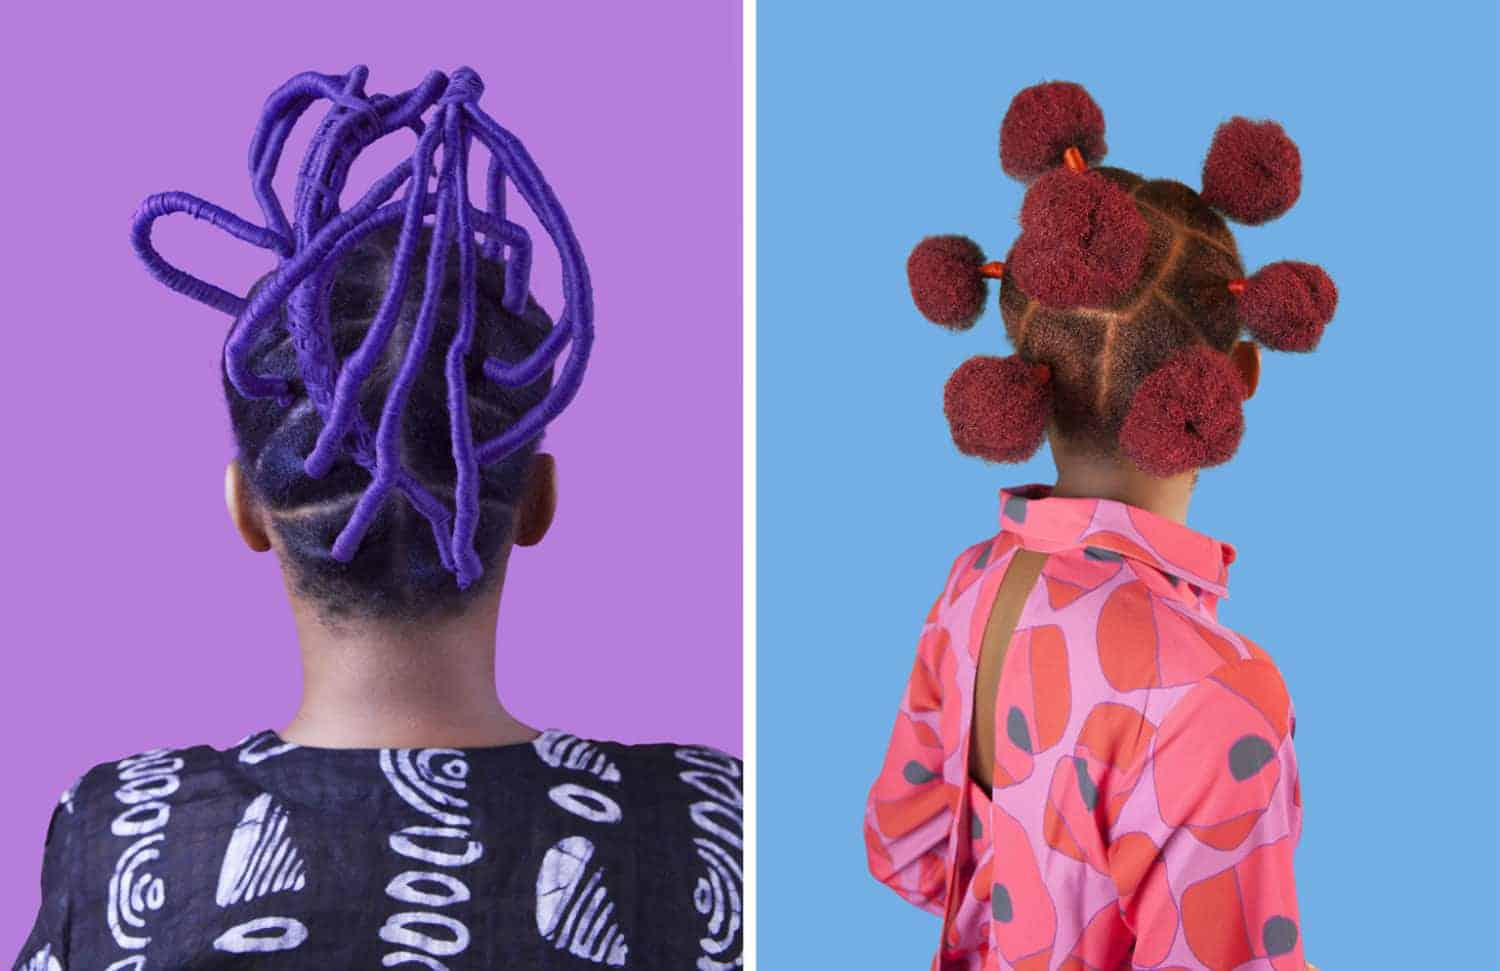 Links: Purple Irun Kiko / Rechts: Pink Buns